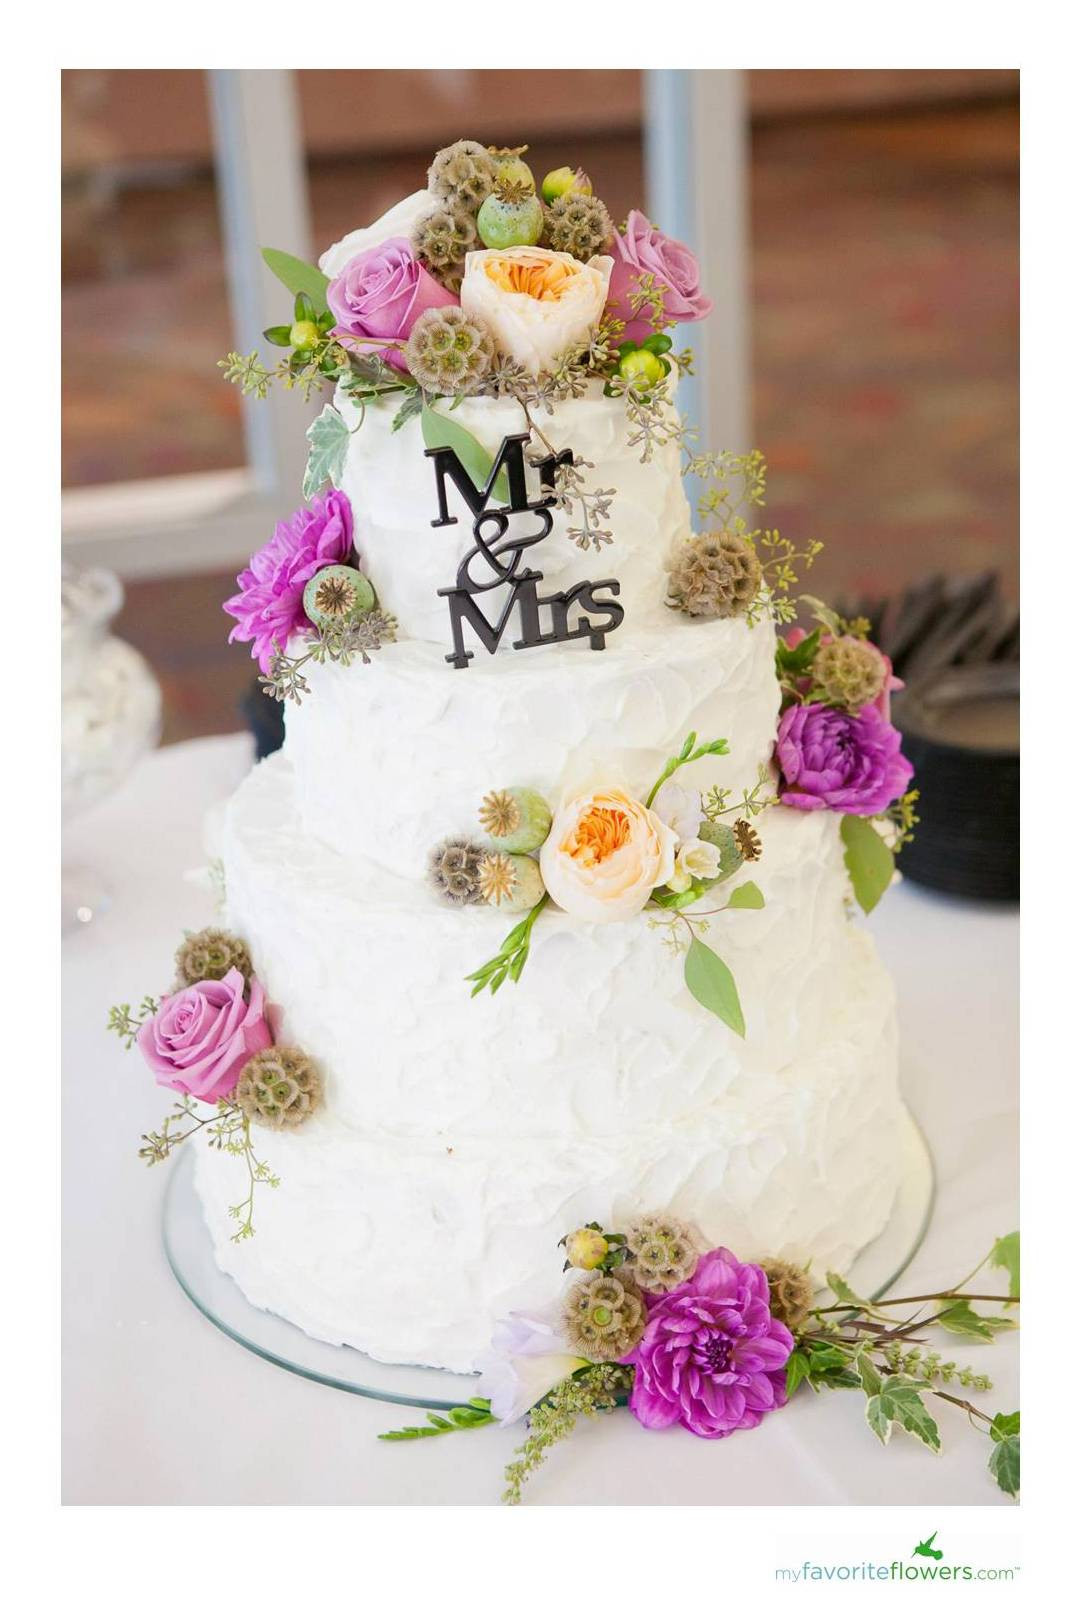 Flowers For Wedding Cakes  Flower Advice Tips on putting fresh flowers on the